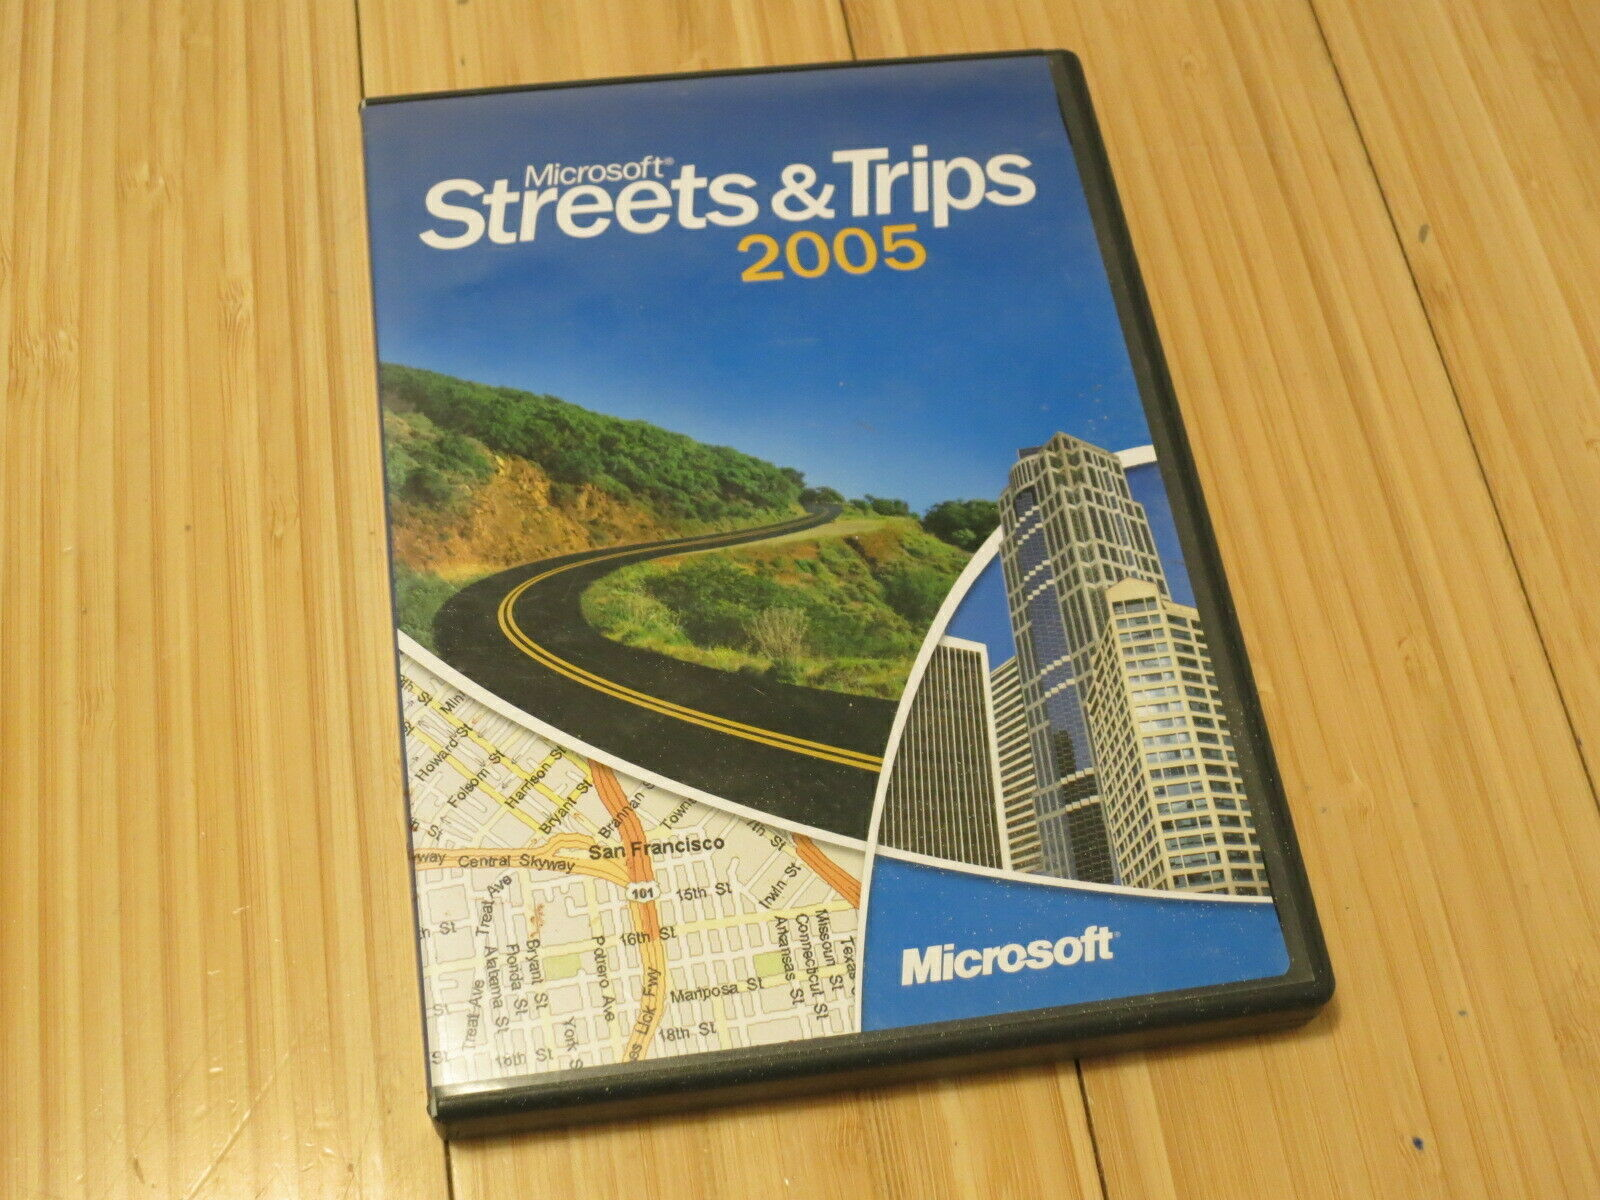 Primary image for Microsoft Streets and Trips 2005 Full Version Windows - 2 CD Set & Manual